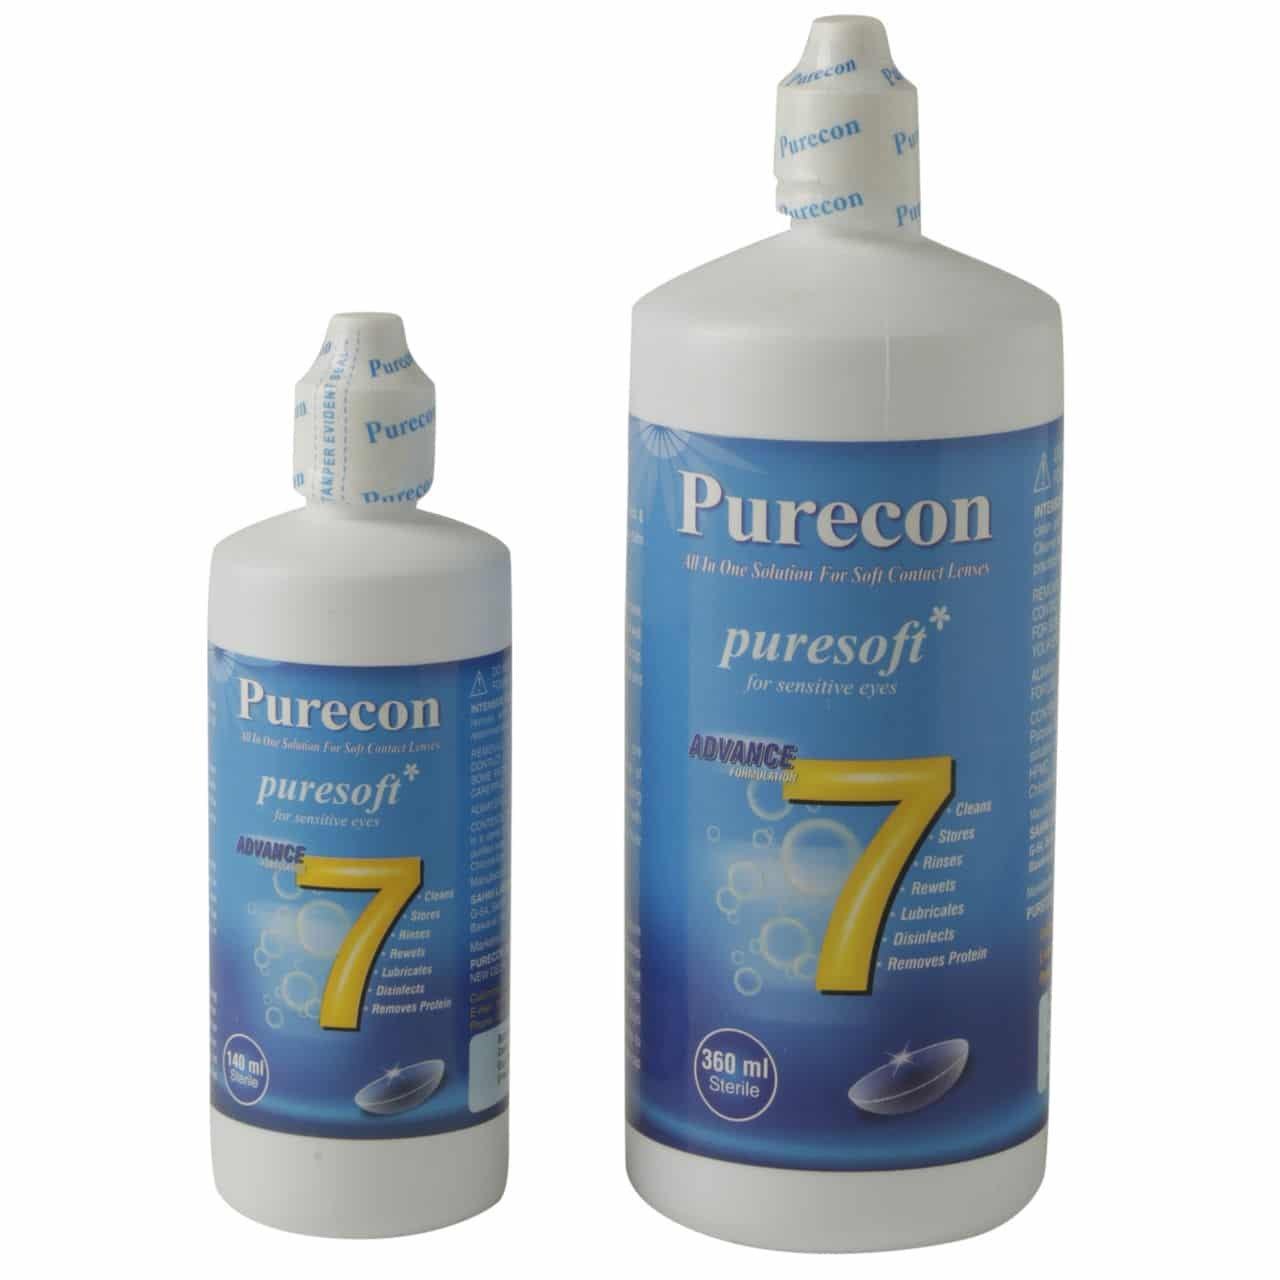 Buy Purecon Puresoft Multi Purpose Solution Combo 500 Ml Online Air Softlens Nice Look 60 At Low Prices In India